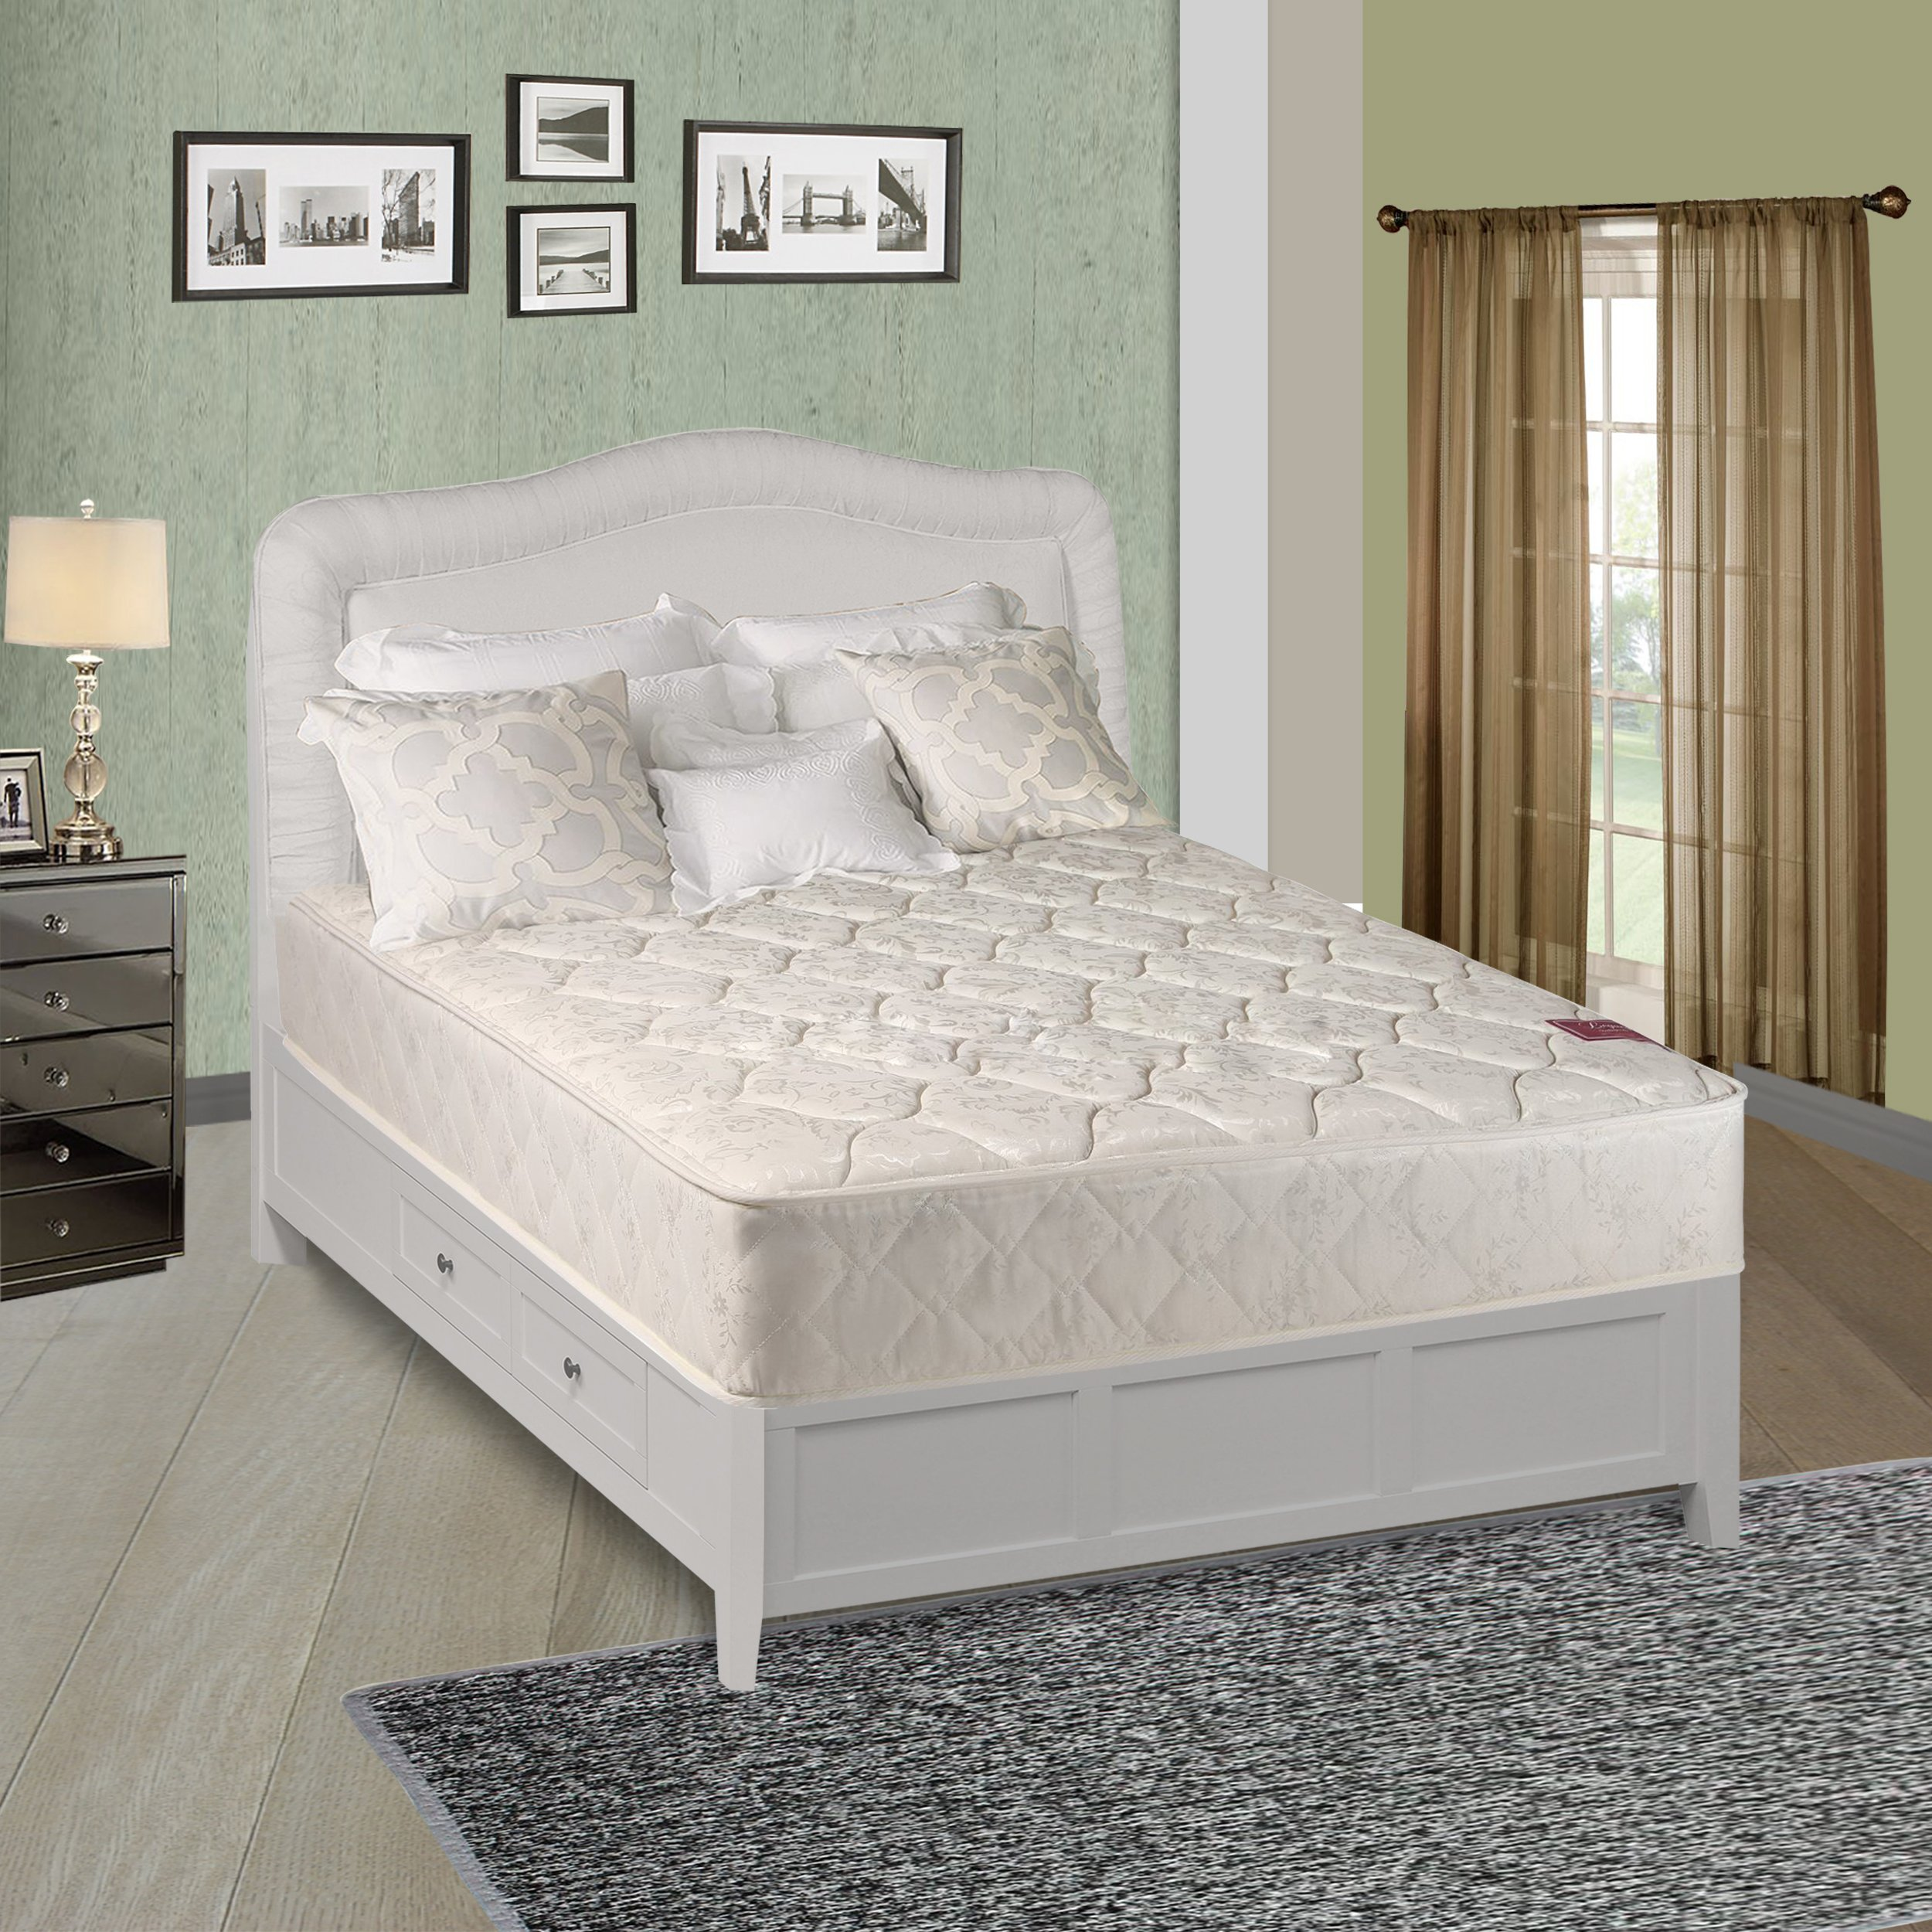 Spinal Solution, 4-inch Fully Assembled innerspring Mattress, Sensation Collection, Twin Size by Spinal Solution